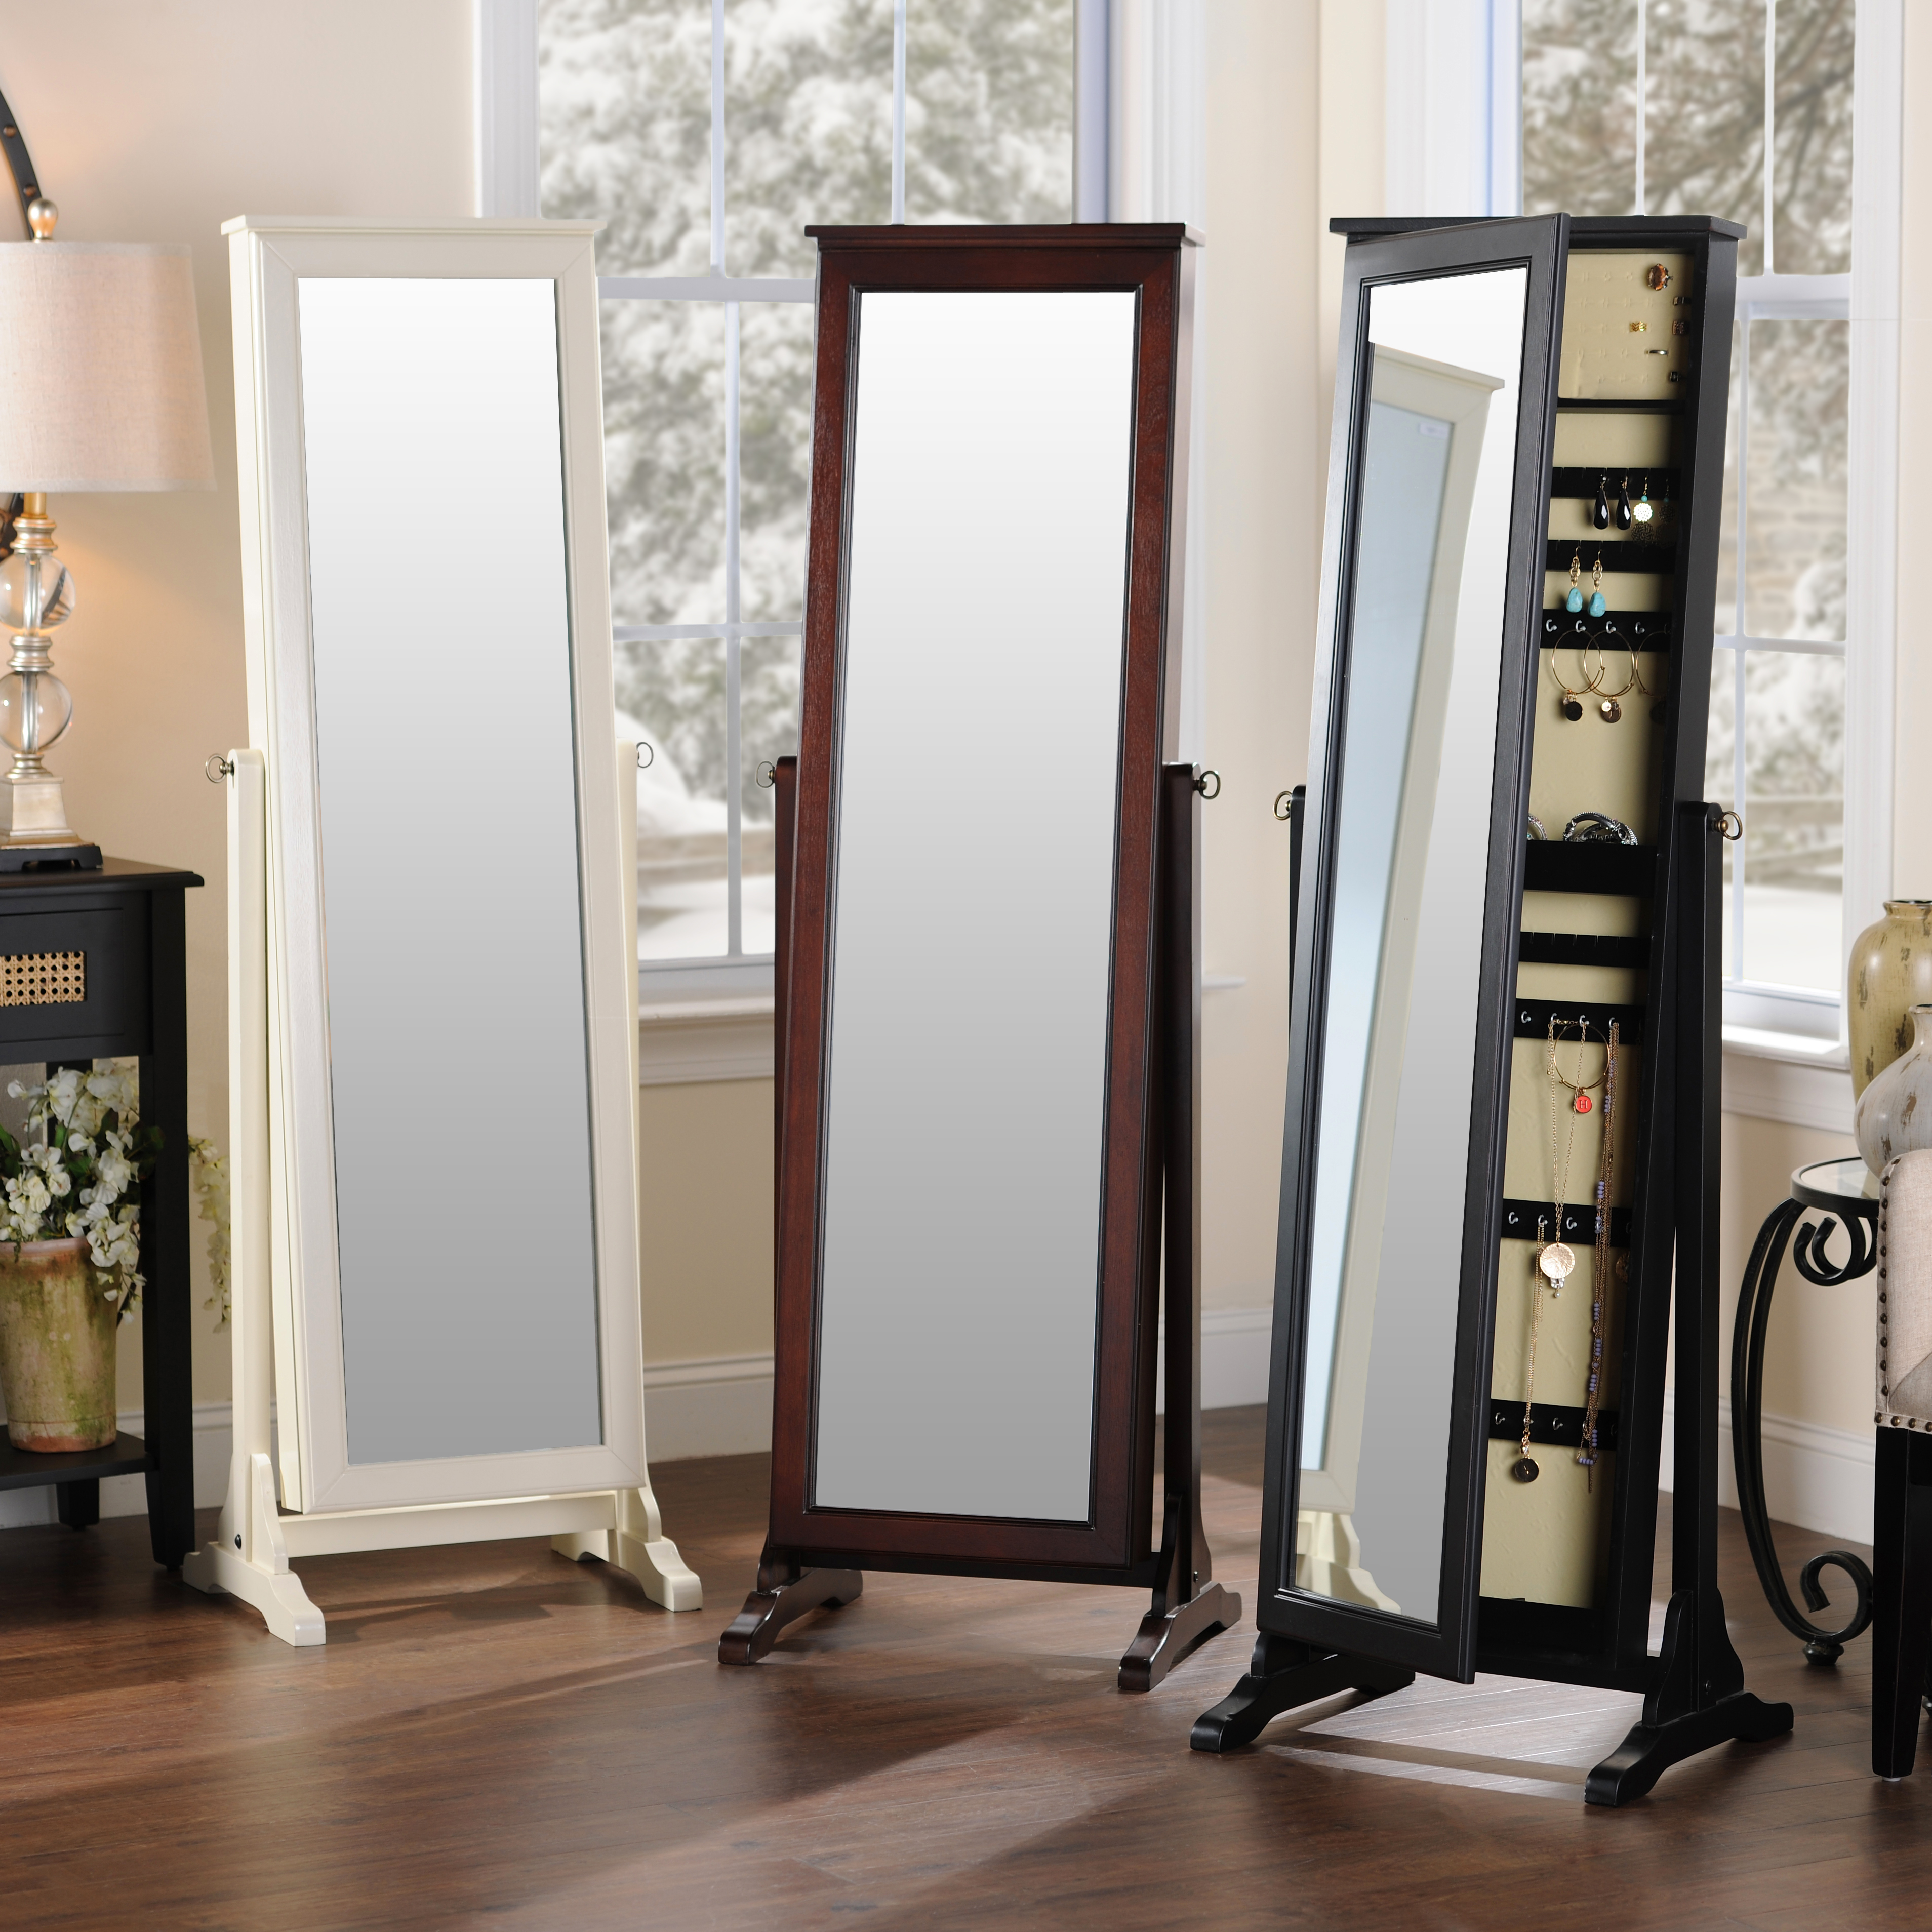 Kirklands Black Cheval Armoire Mirror is a great gift for the girl